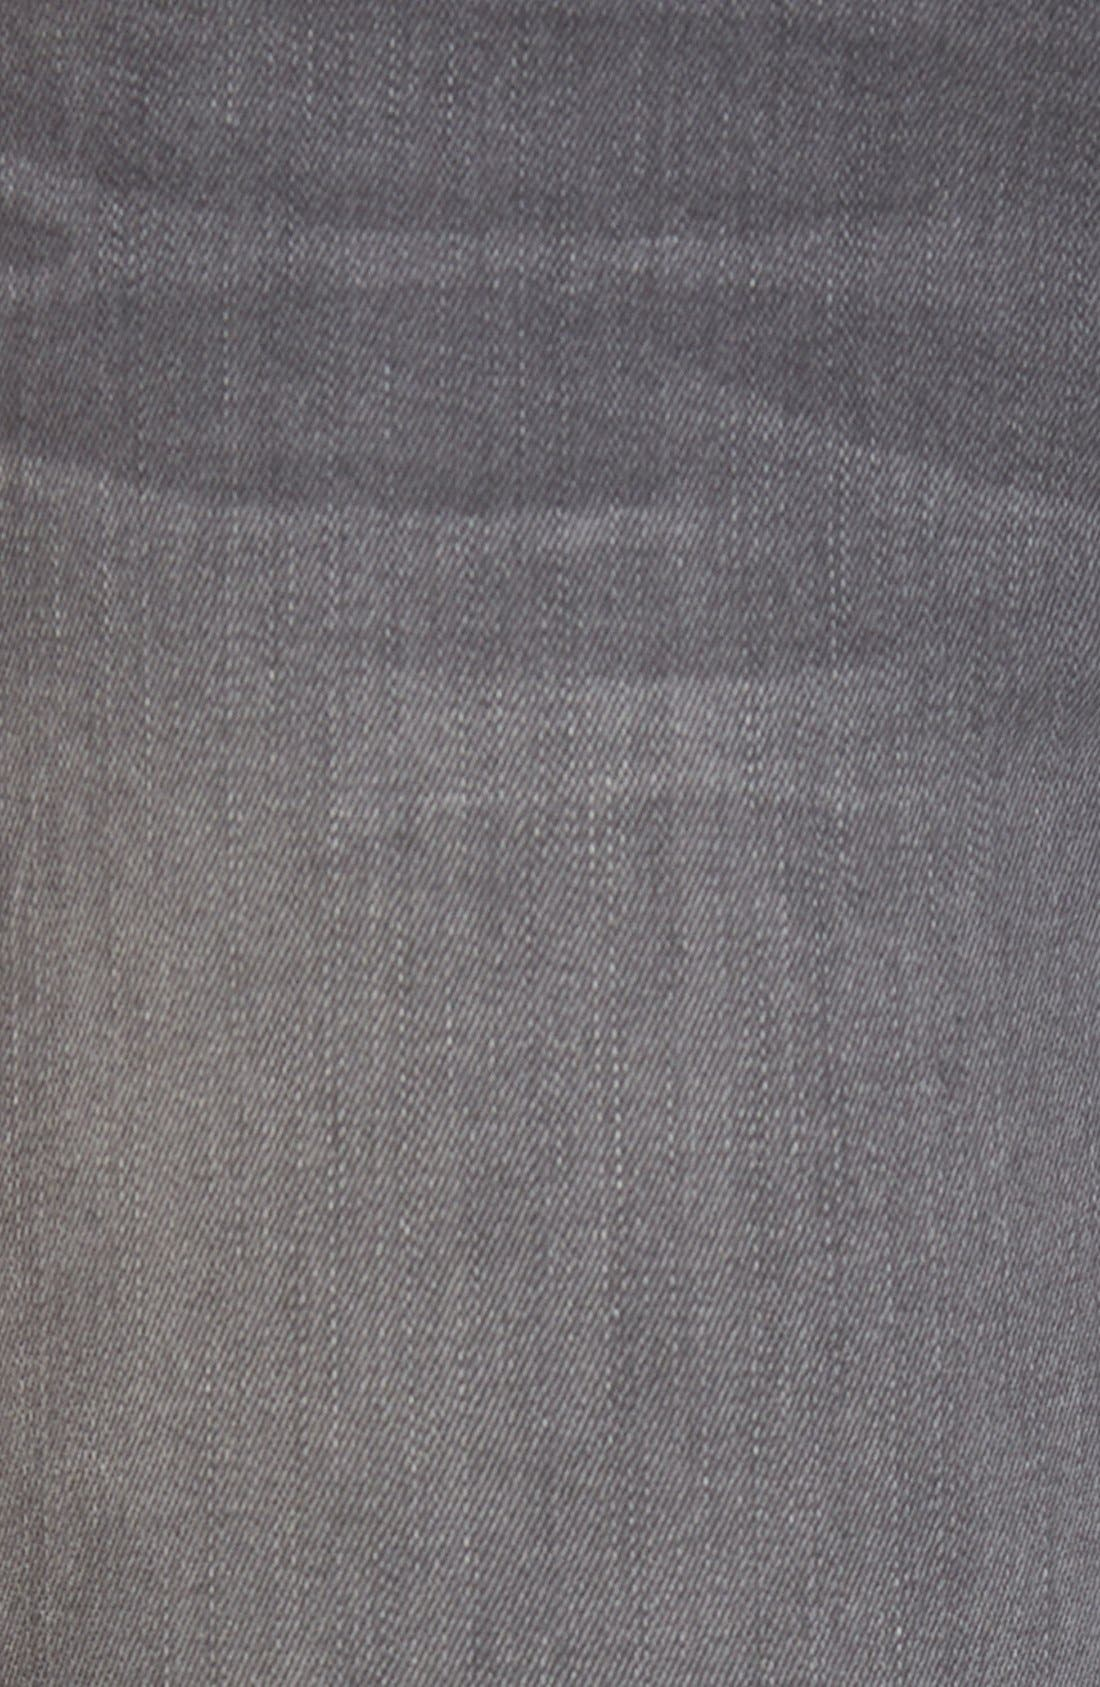 Alternate Image 5  - 3x1 NYCHigh Rise Destroyed Skinny Jeans (Golf Grey Decon)